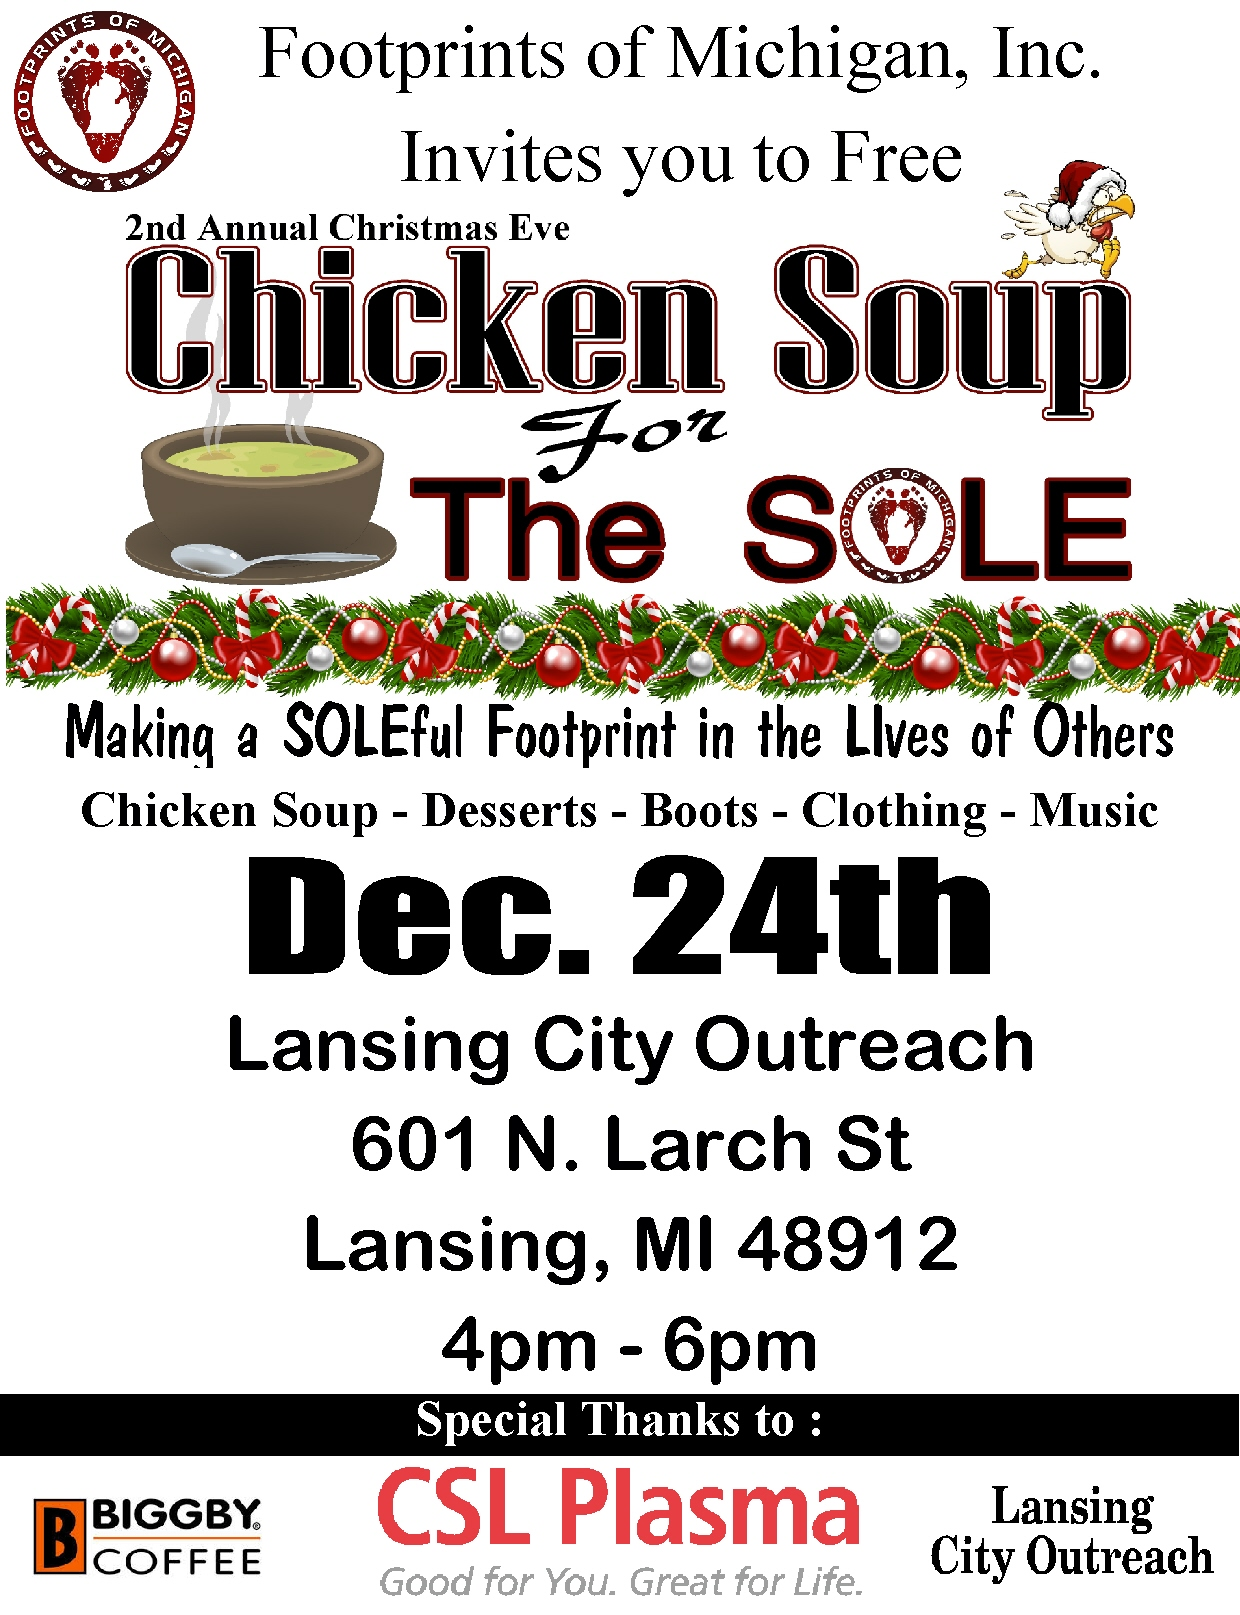 soup for sole flyer_352043